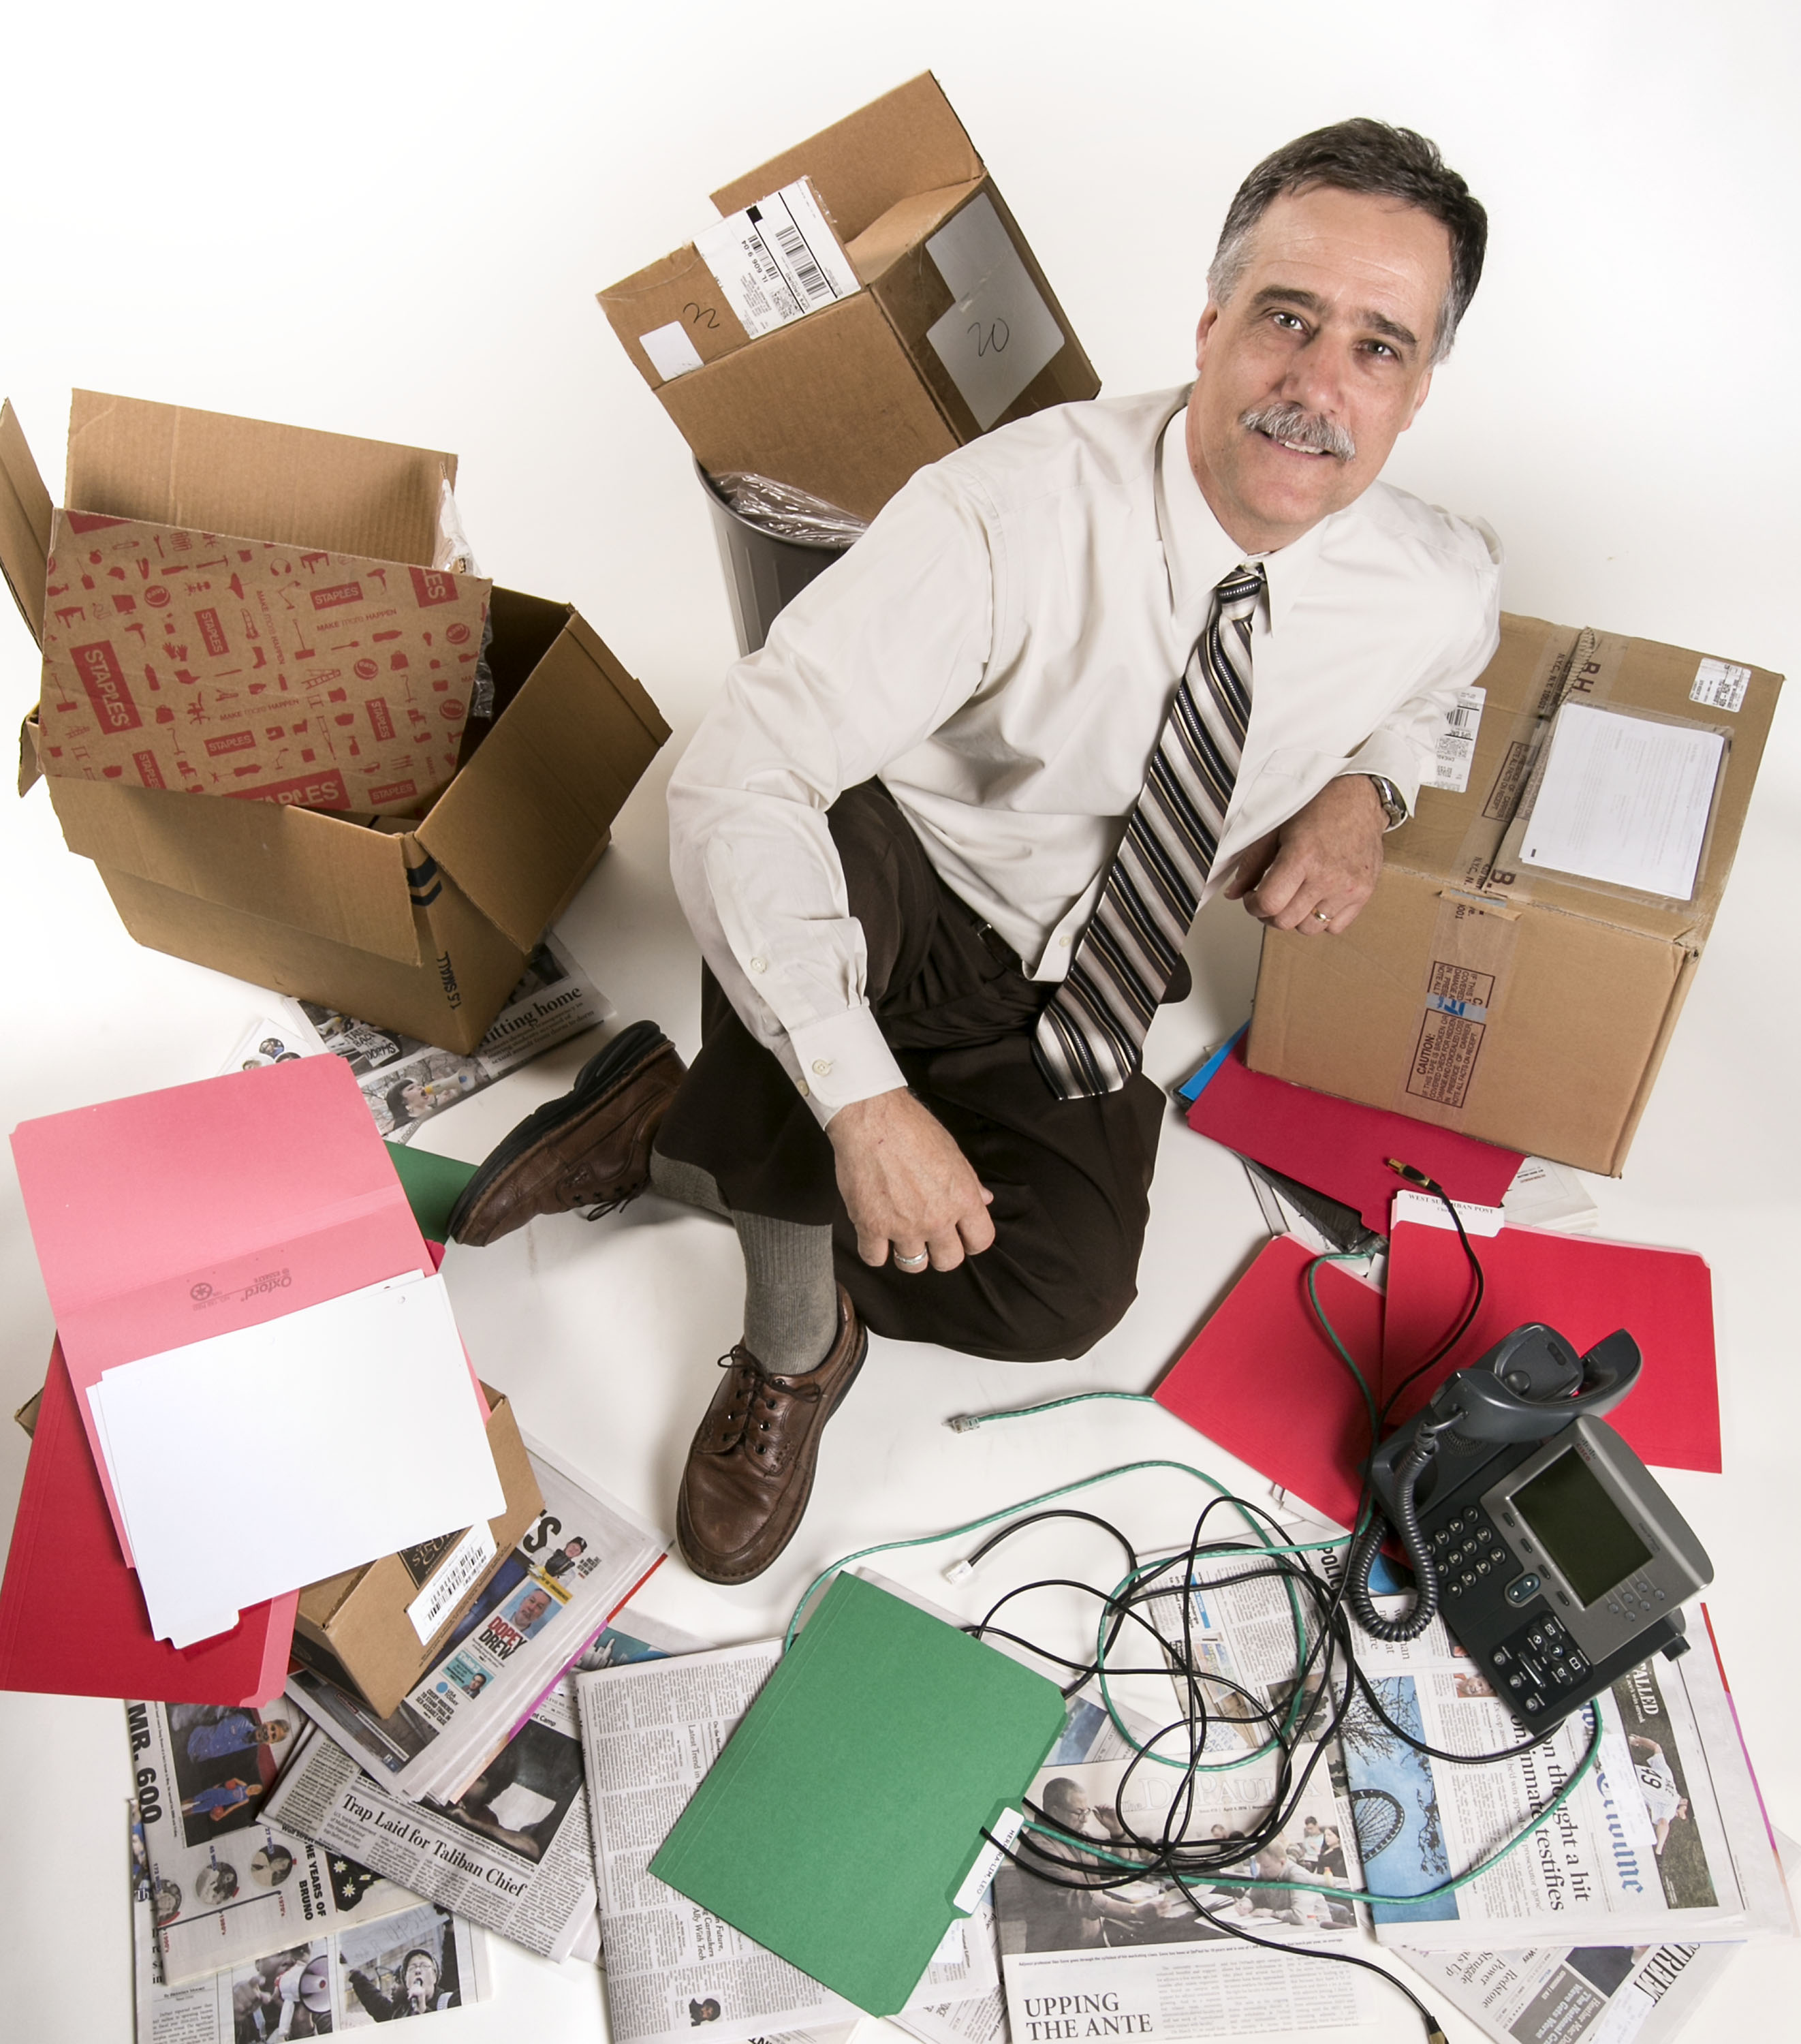 "Joseph Ferrari, a professor of psychology at DePaul University in Chicago co-authored a study which looked at how an overabundance of possessions that collectively create chaotic and disorderly living spaces. ""It's the danger of clutter, the totality of one's possessions being so overwhelming that it chips away at your well-being, relationships, and more, drowning in a sea of stuff,"" Ferrari said. (DePaul University/Jamie Moncrief)"